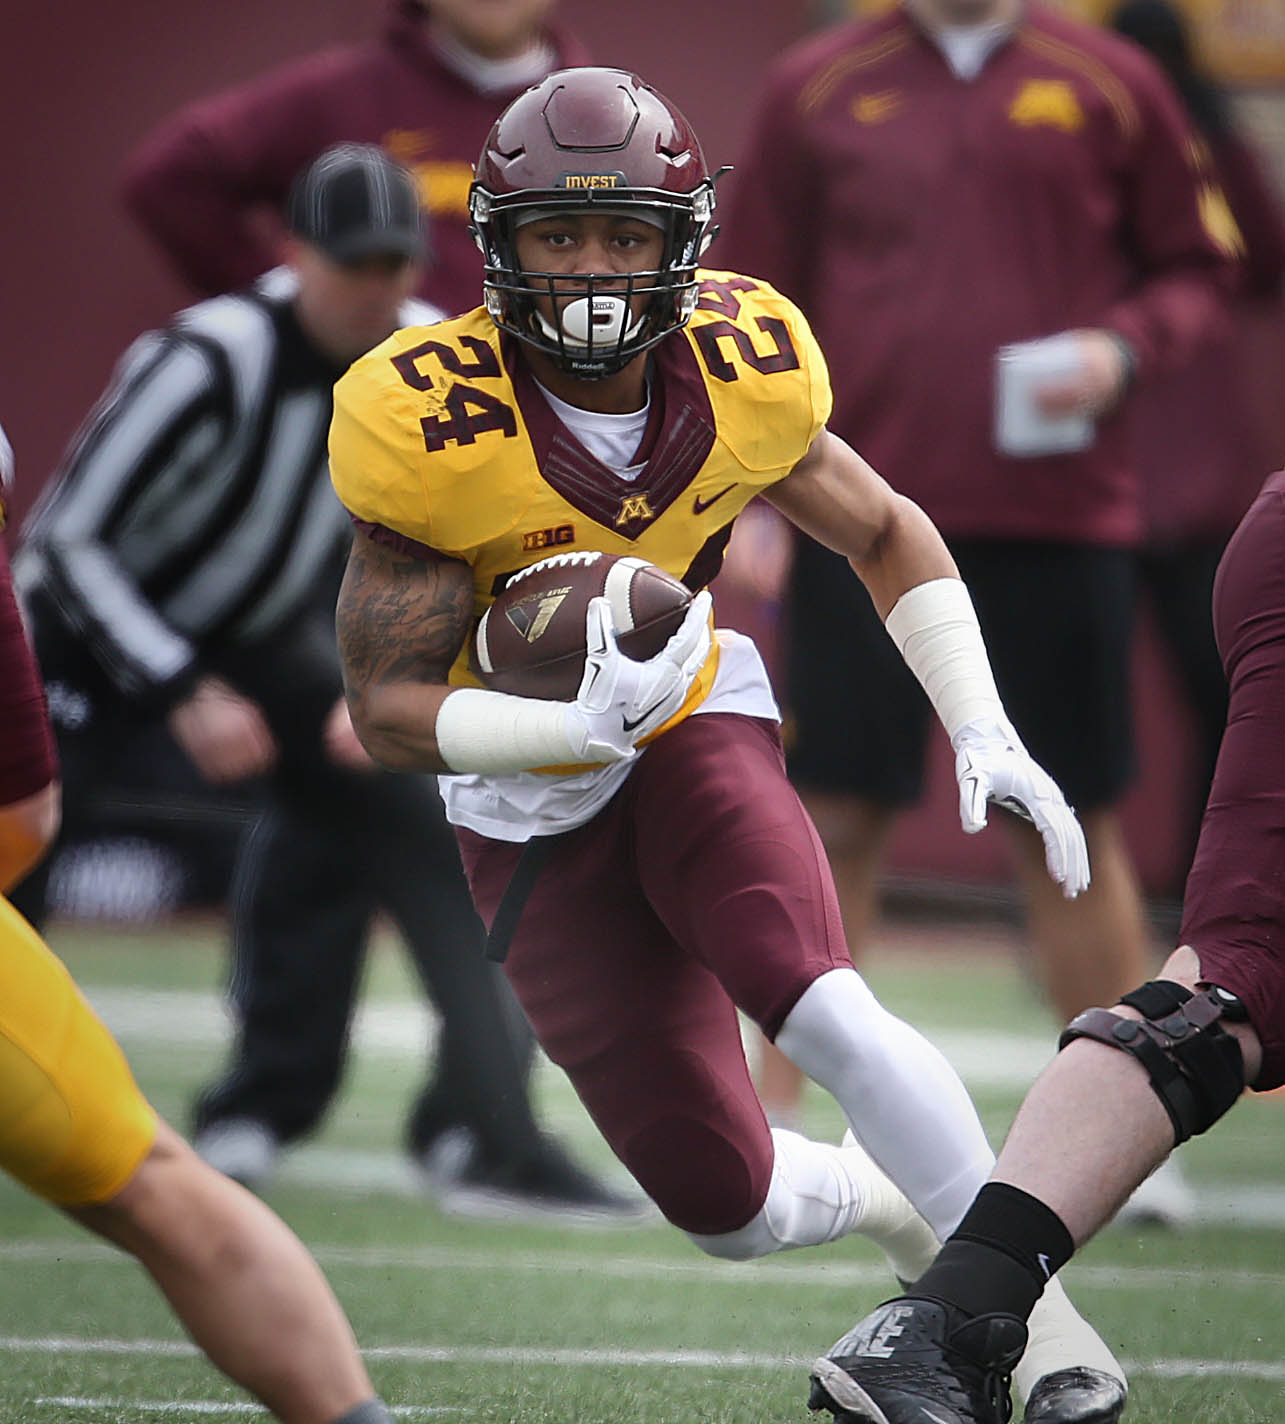 Minnesota's gold team running back Rodney Smith looked for an opening in a spring NCAA college spring football game in Minneapolis on Saturday, April 9, 2016. (Jim Gehrz/Star Tribune via AP) MANDATORY CREDIT